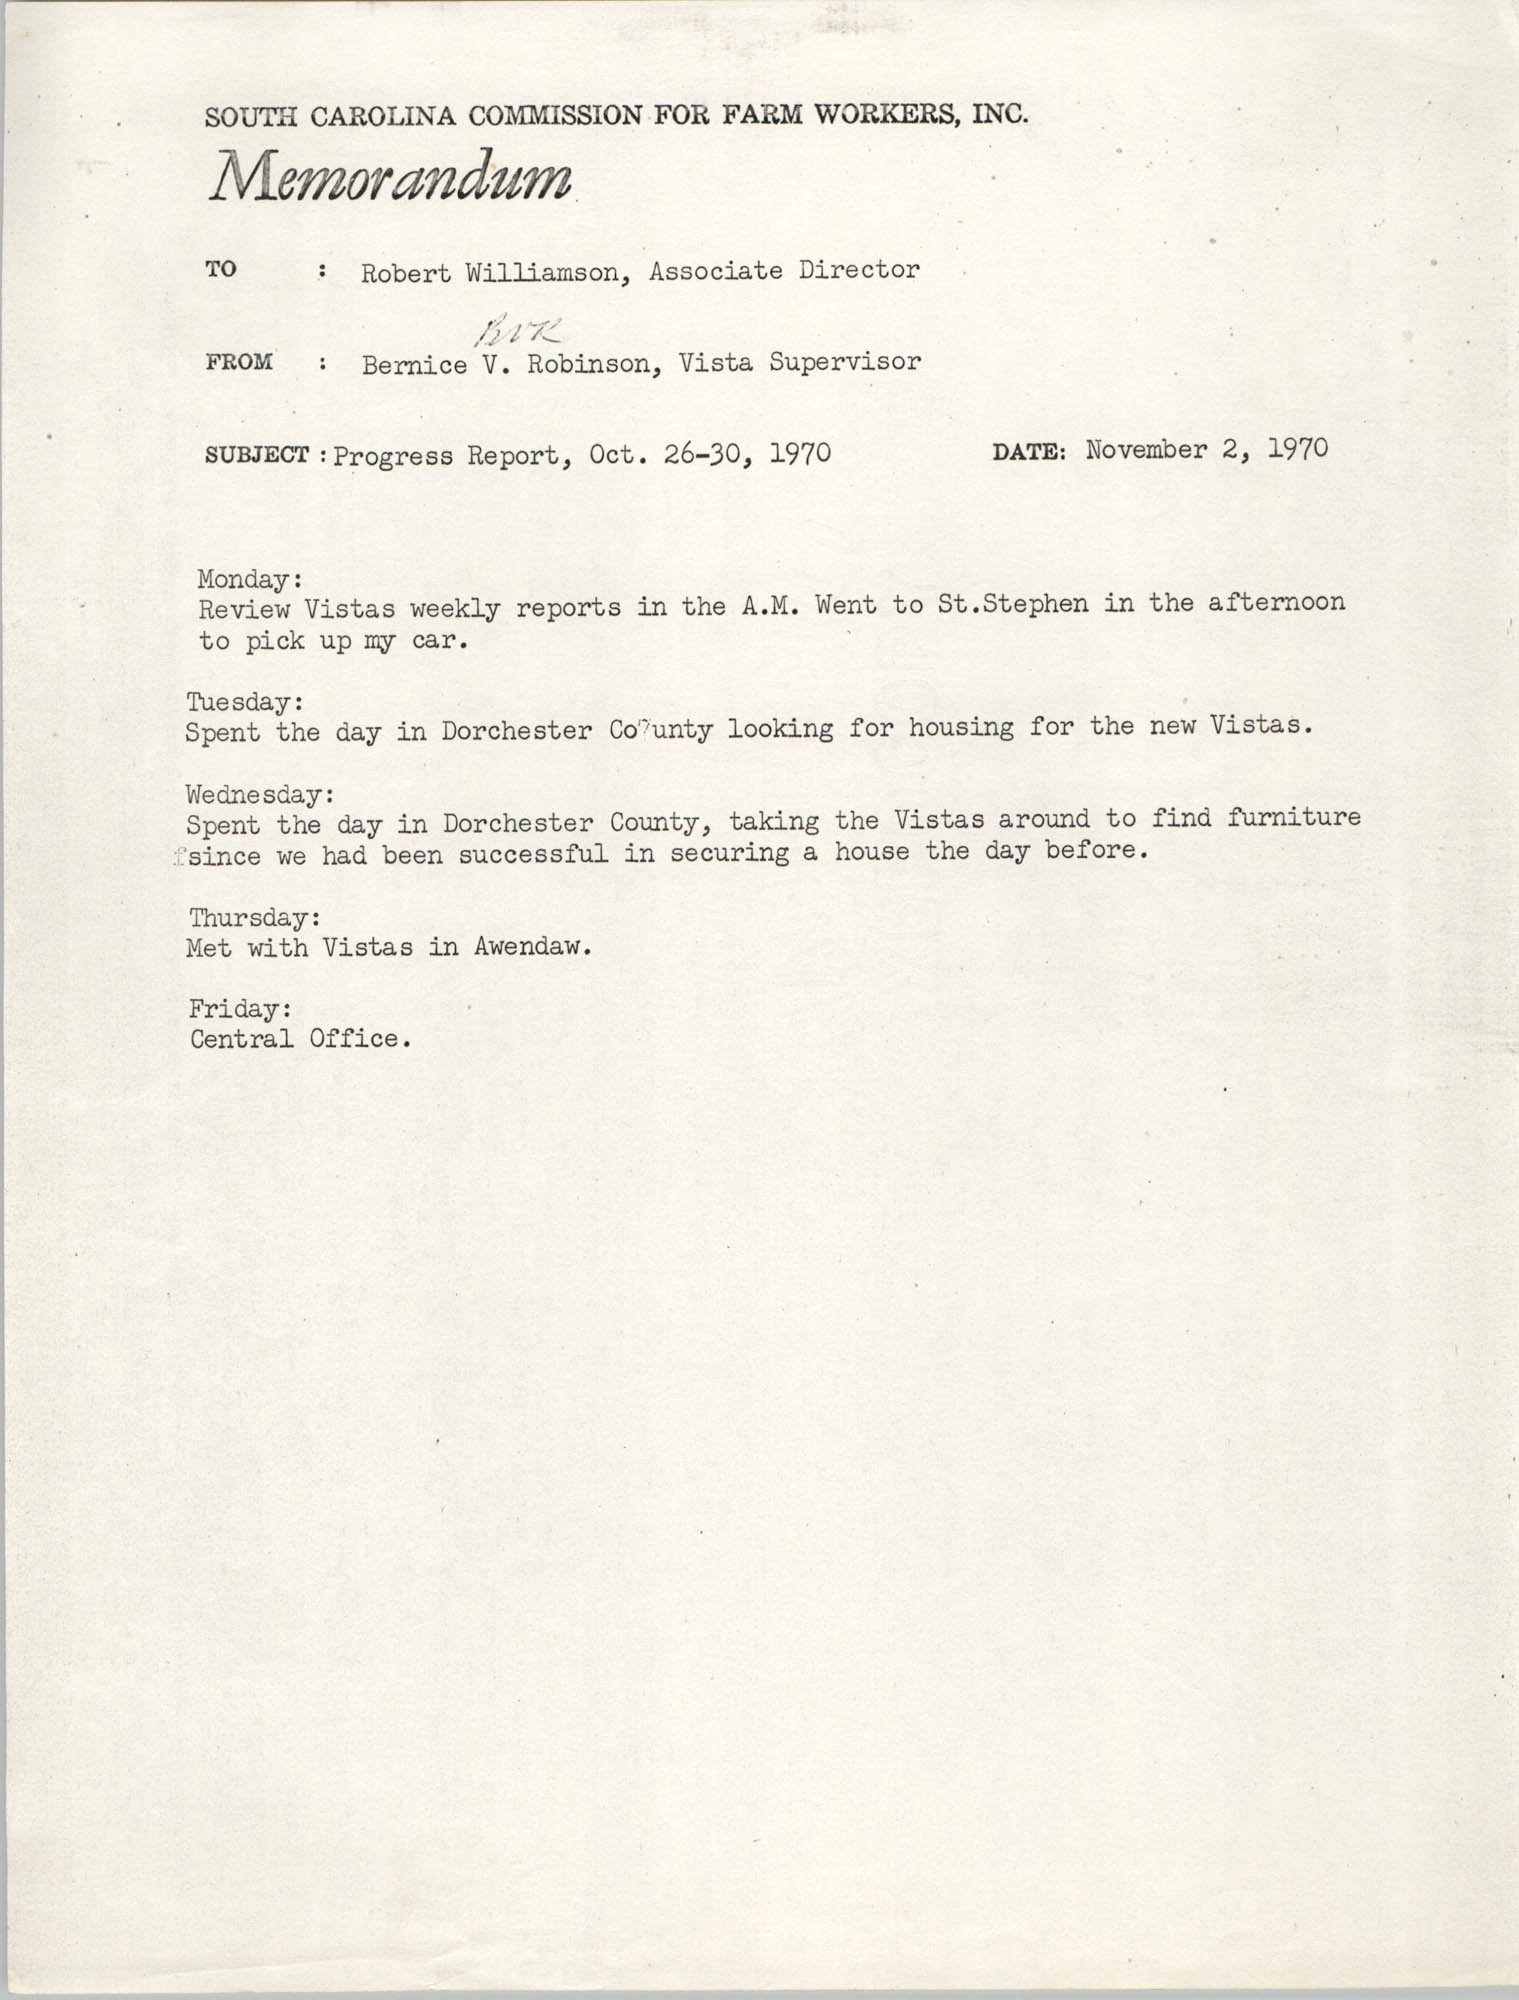 Memorandum from Bernice V. Robinson to Robert Williamson, November 2, 1970